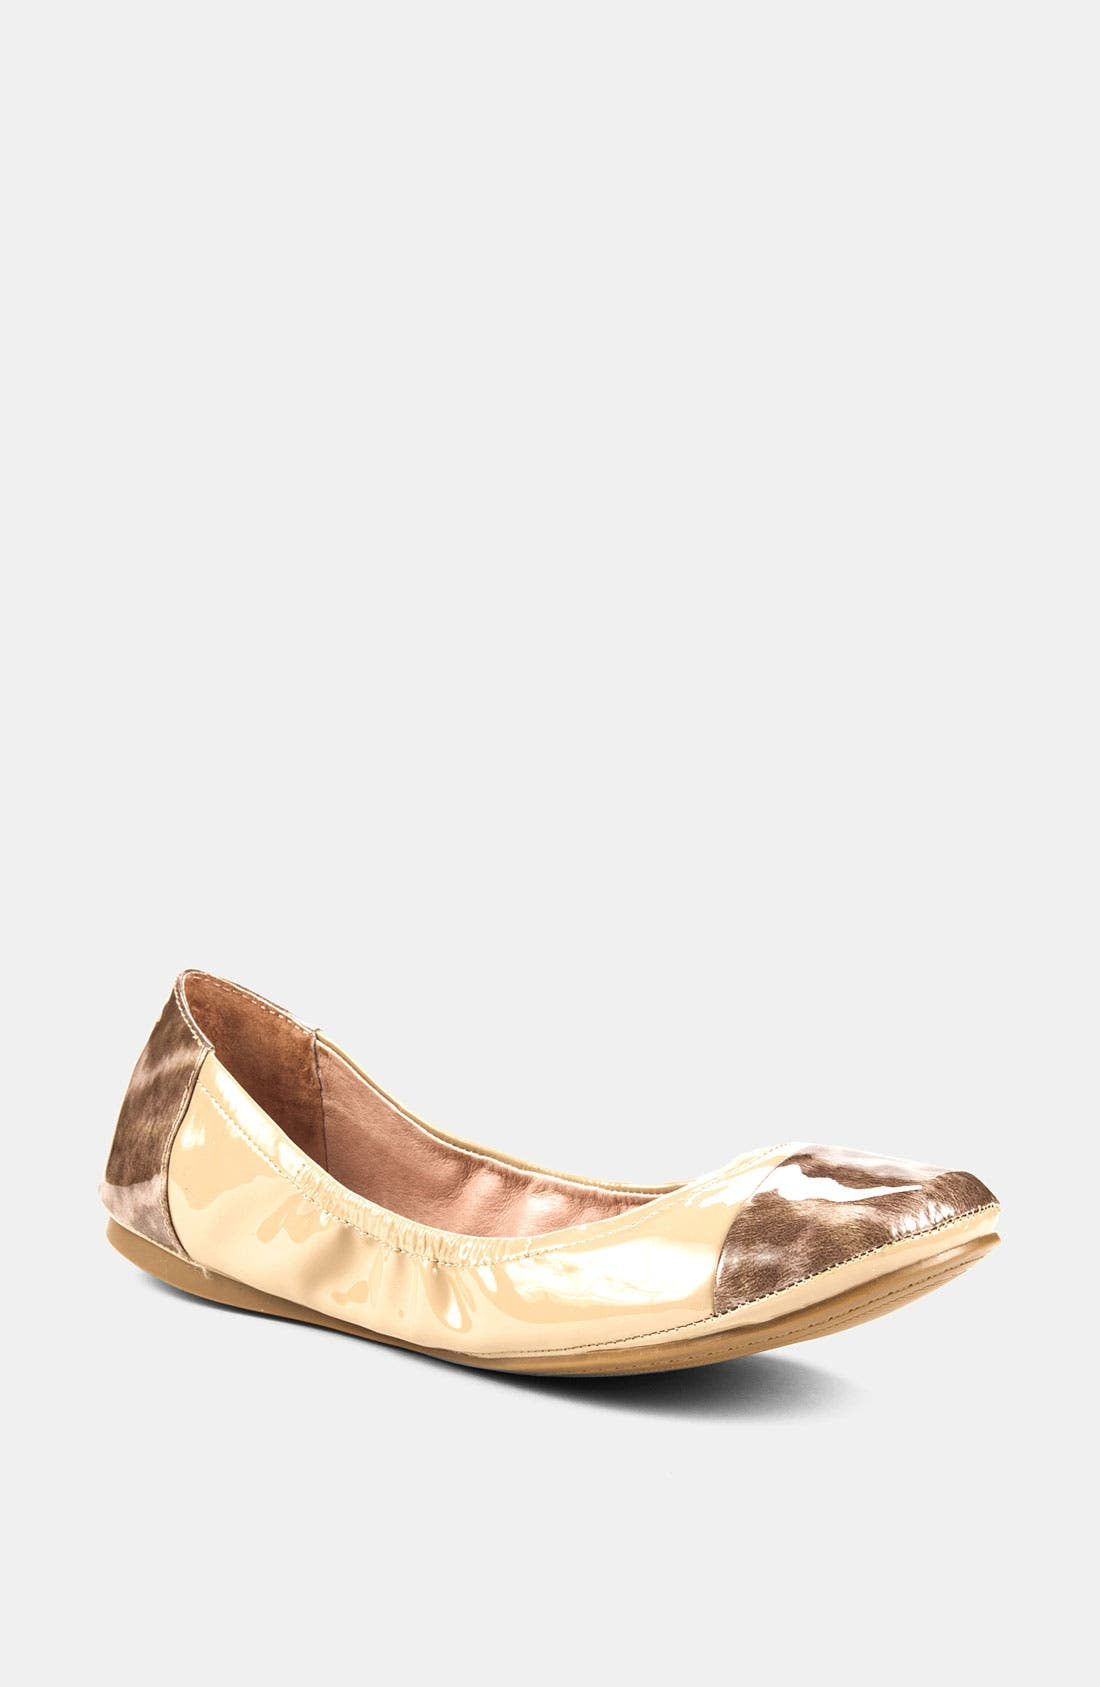 Main Image - Vince Camuto 'Ernest' Flat